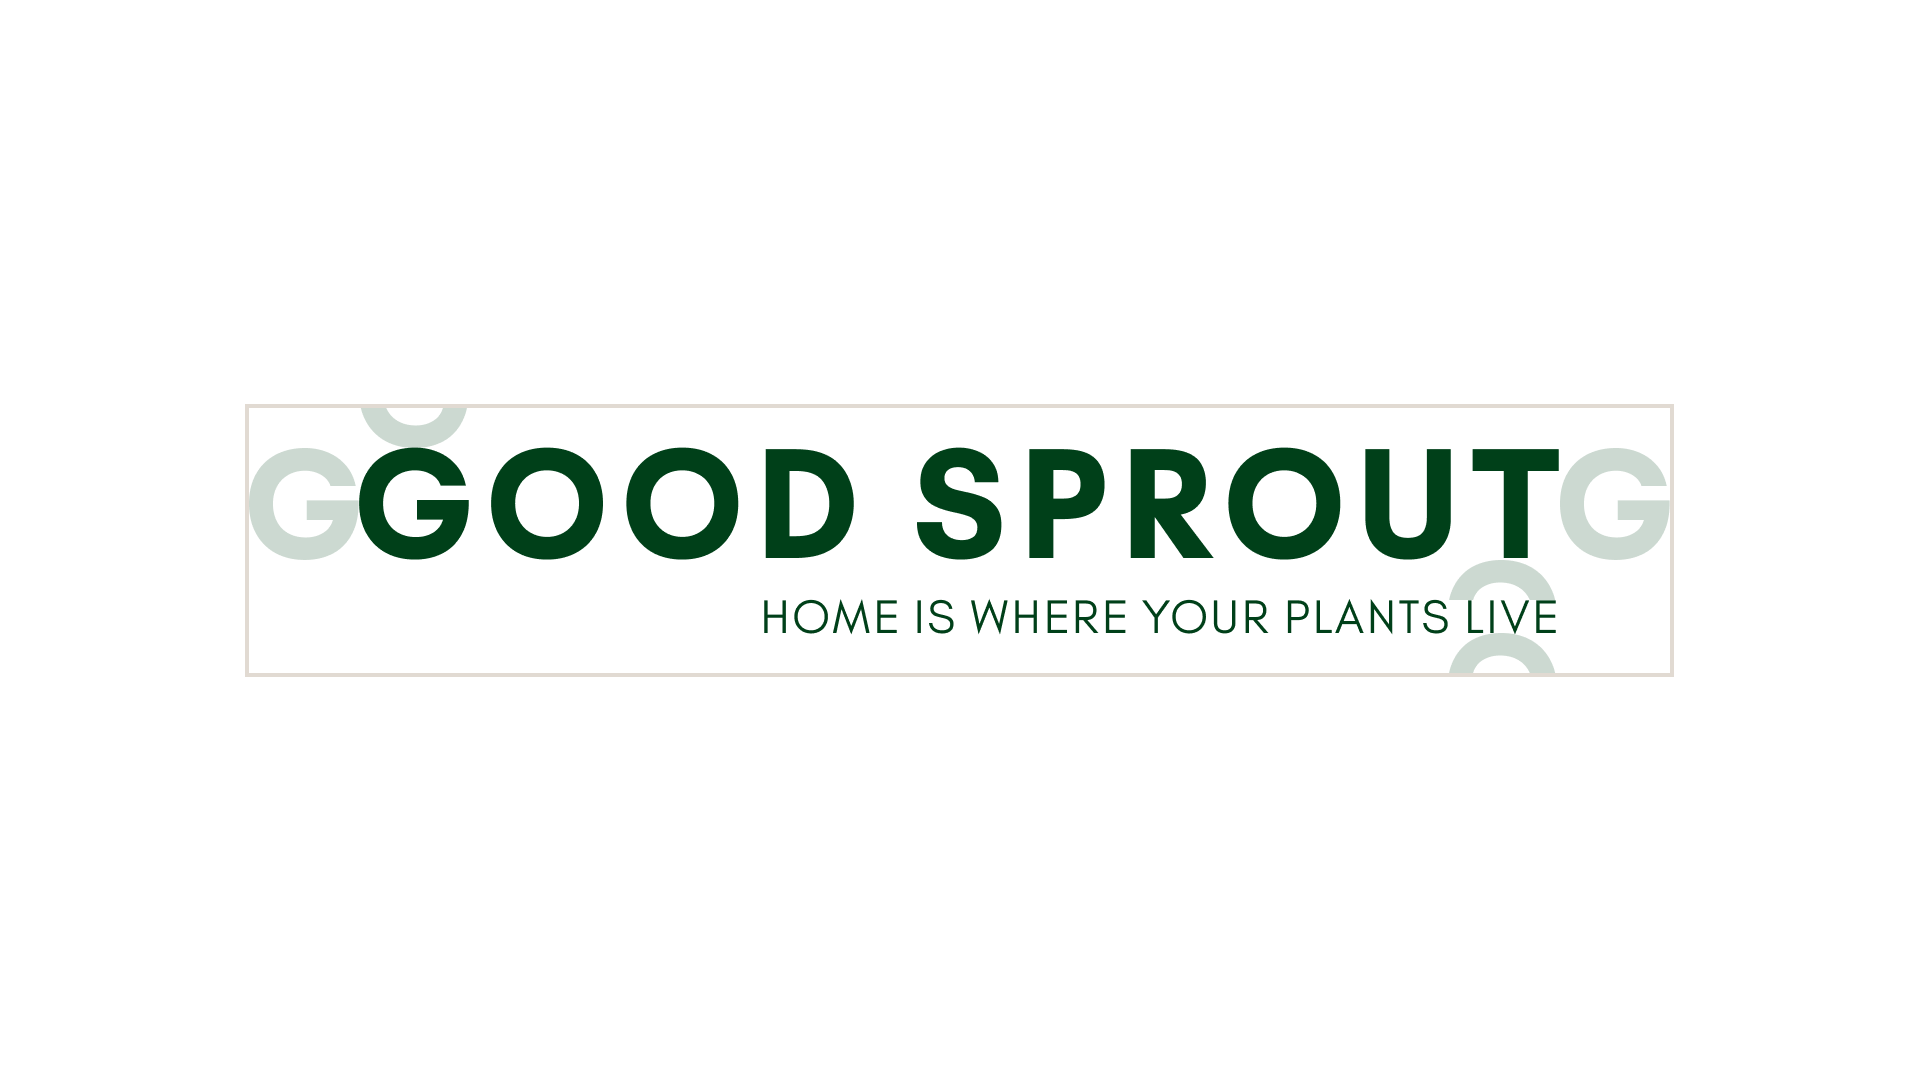 Projekt Good Sprout 9